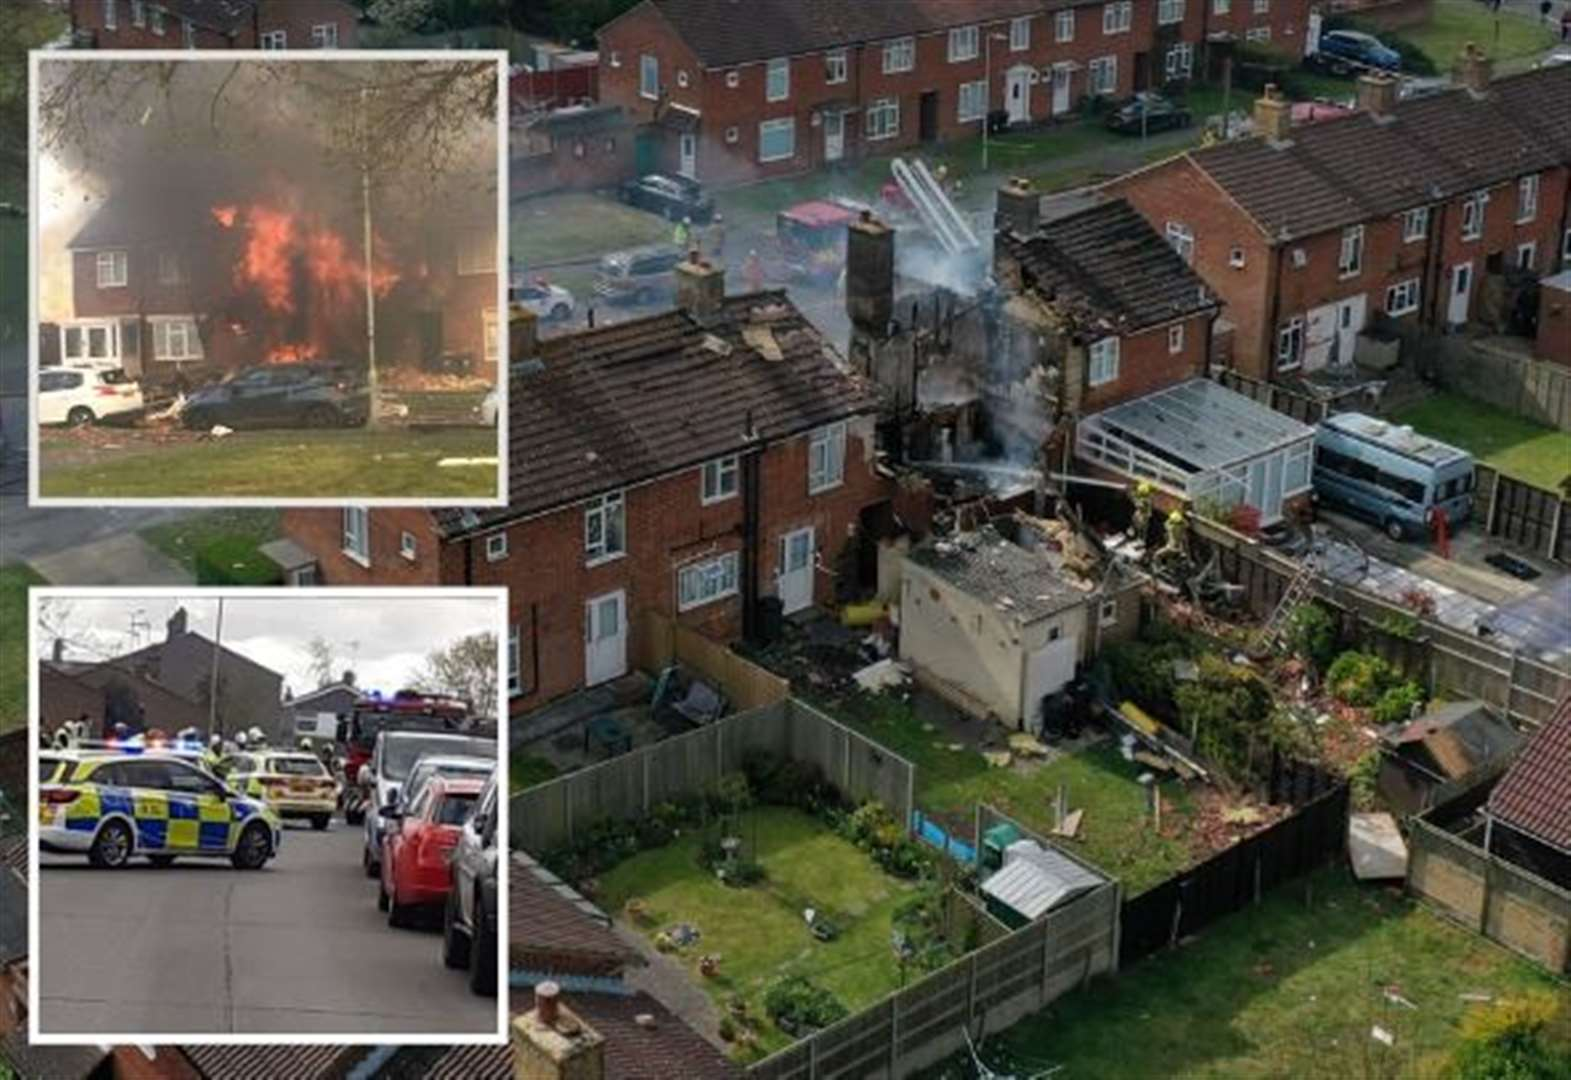 Seven injured as house destroyed in explosion